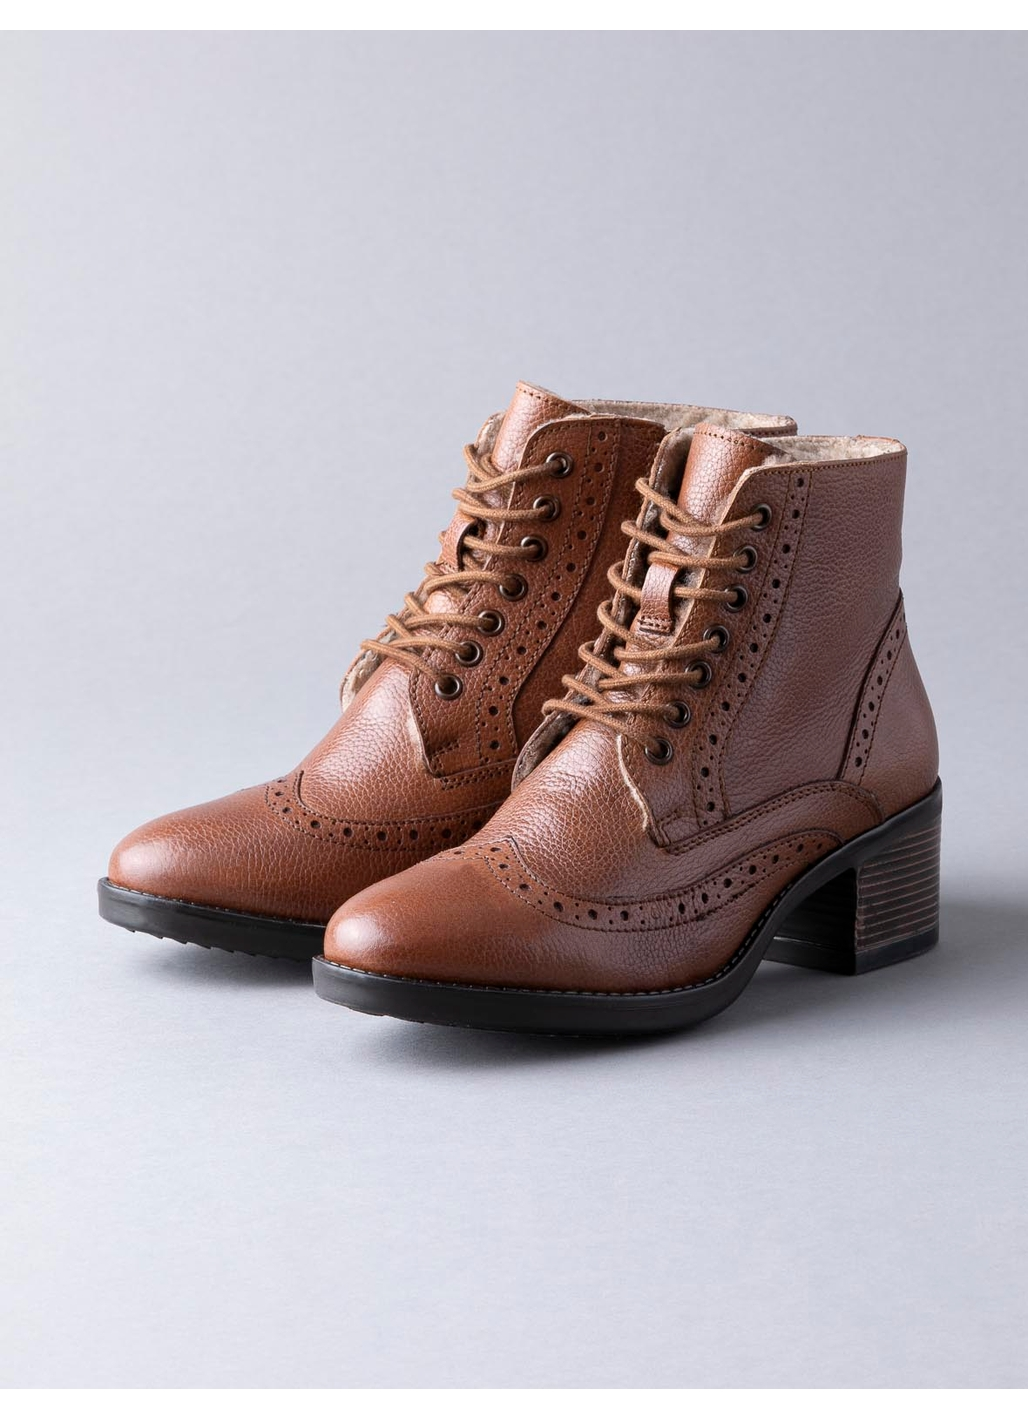 Lotus Amira Leather Ankle Boots in Tan